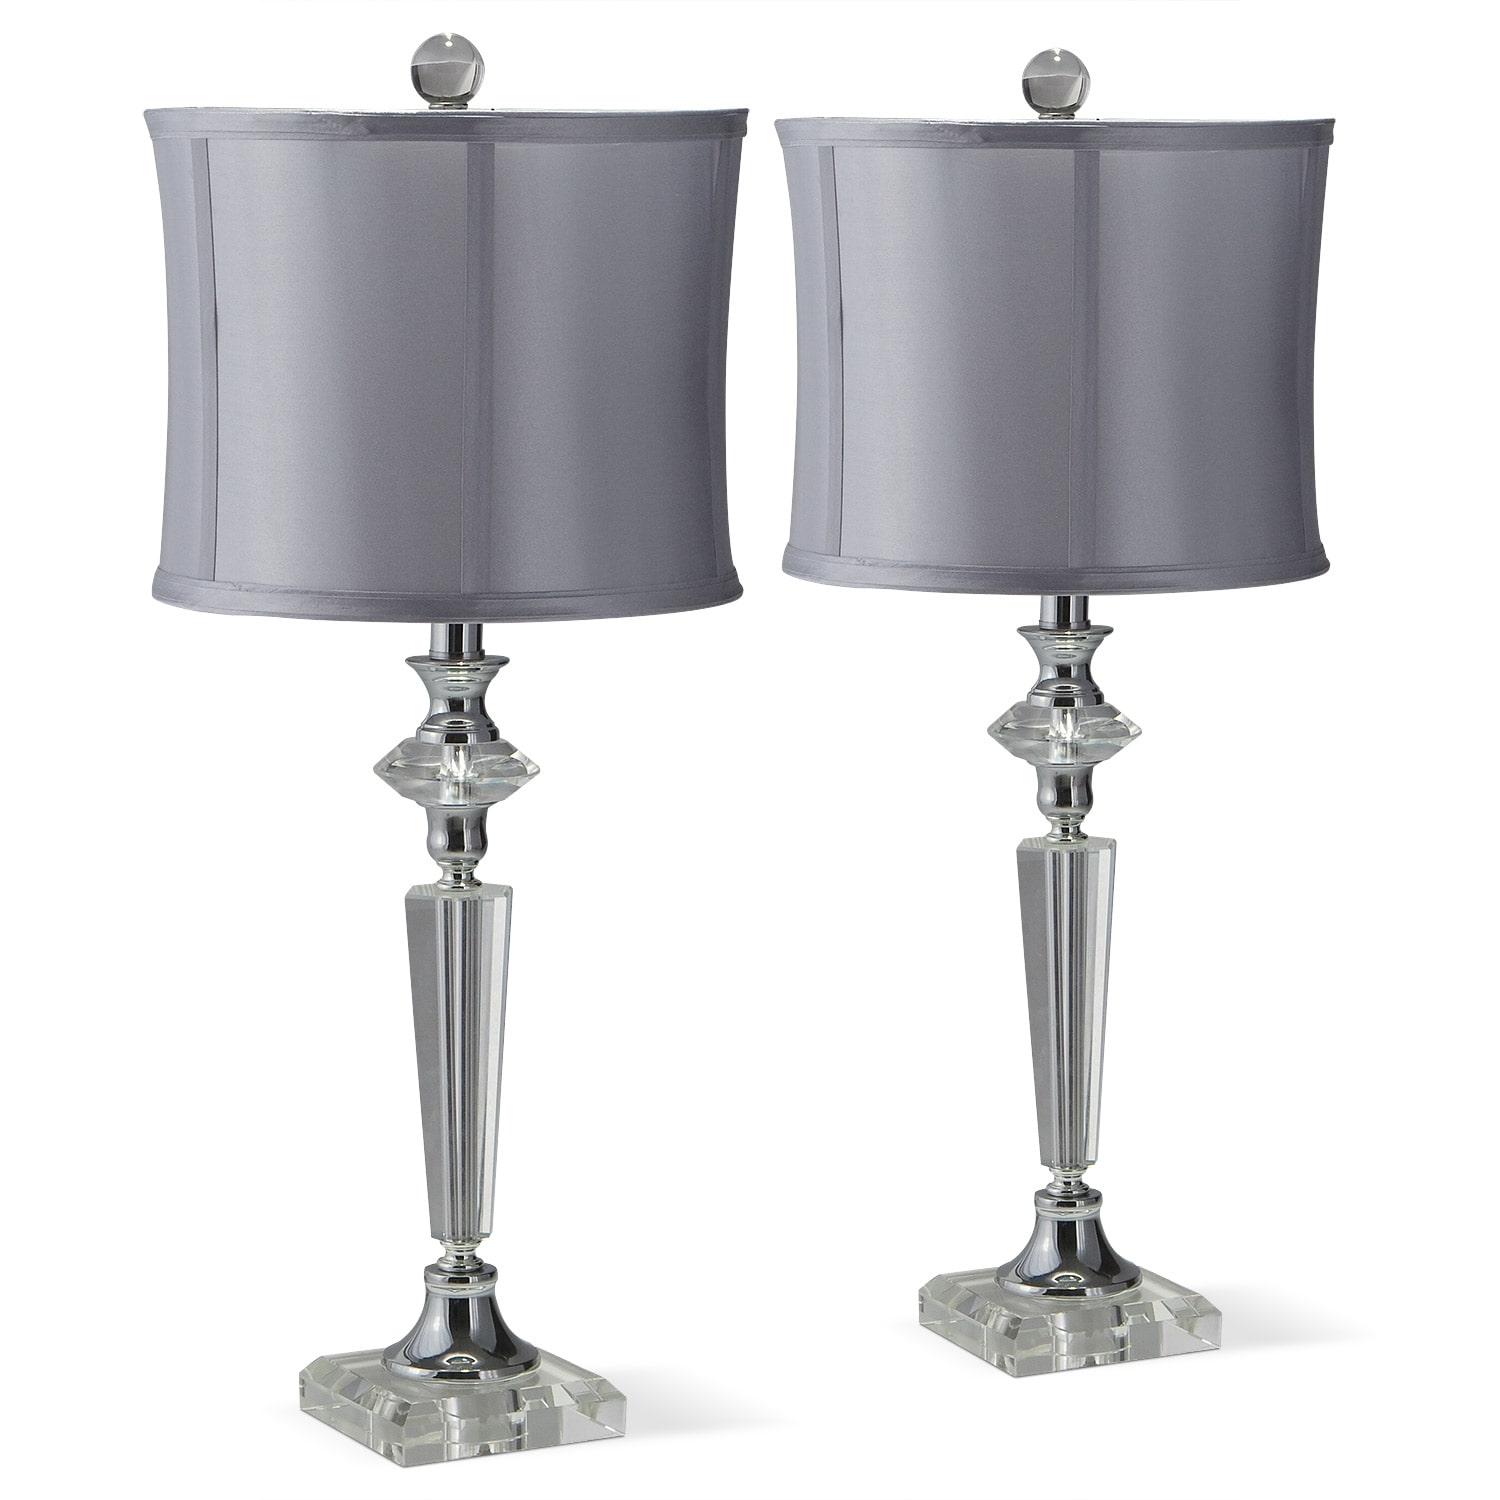 Pick Up End Table Lamps For Living Room Kmart: Crystal Silver 2-Pack Table Lamp Set